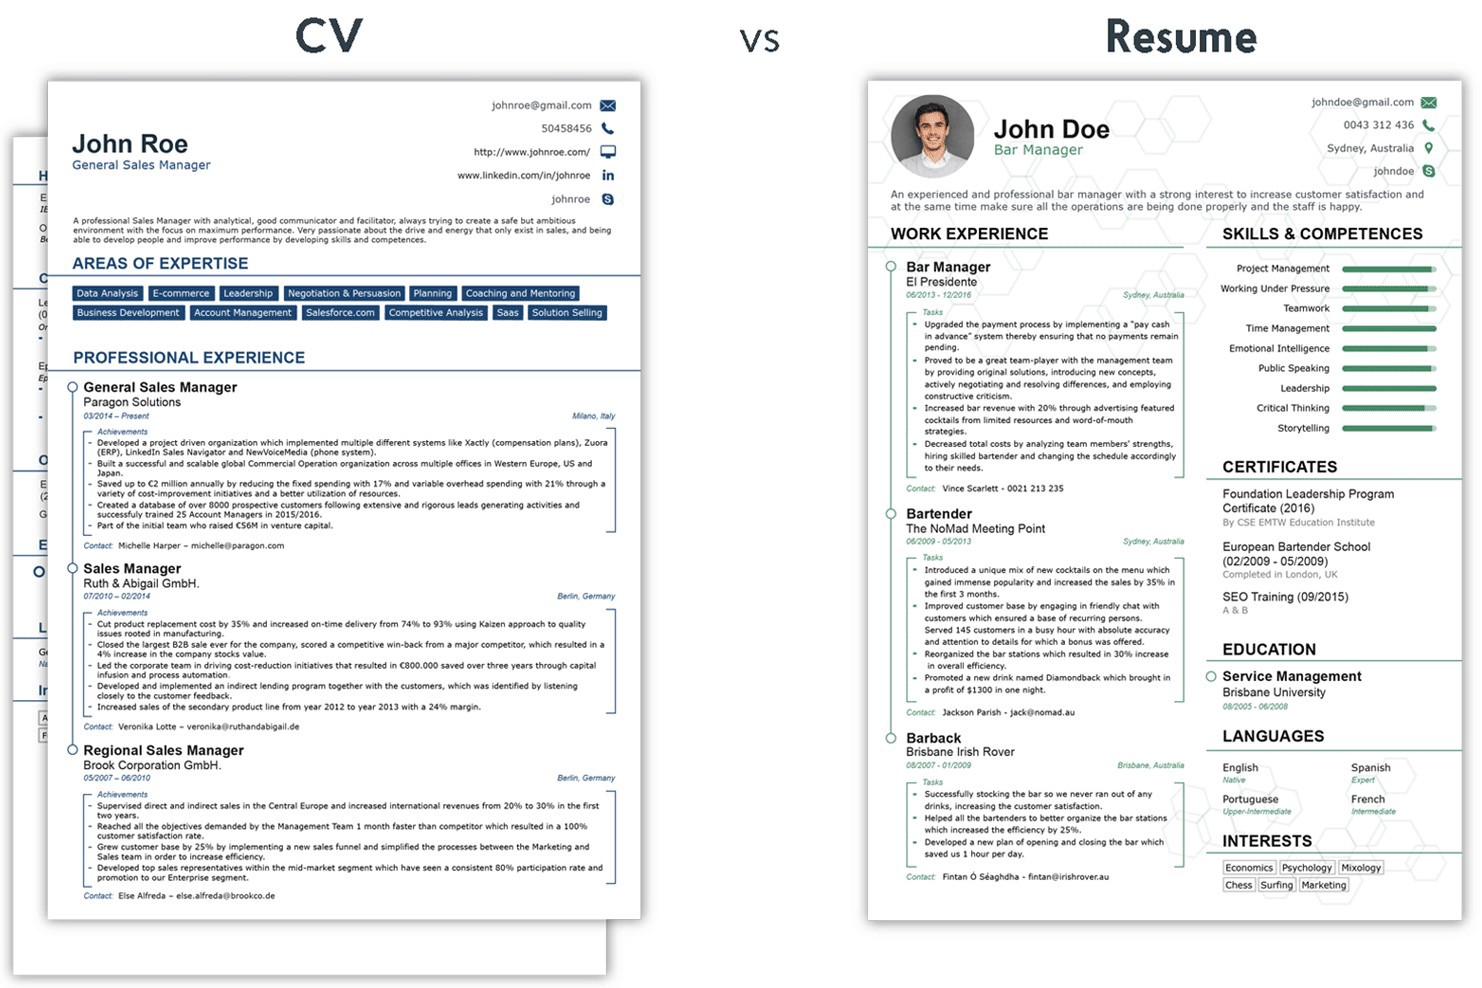 Cv Vs Resume What Is The Difference Between Cv And Resume